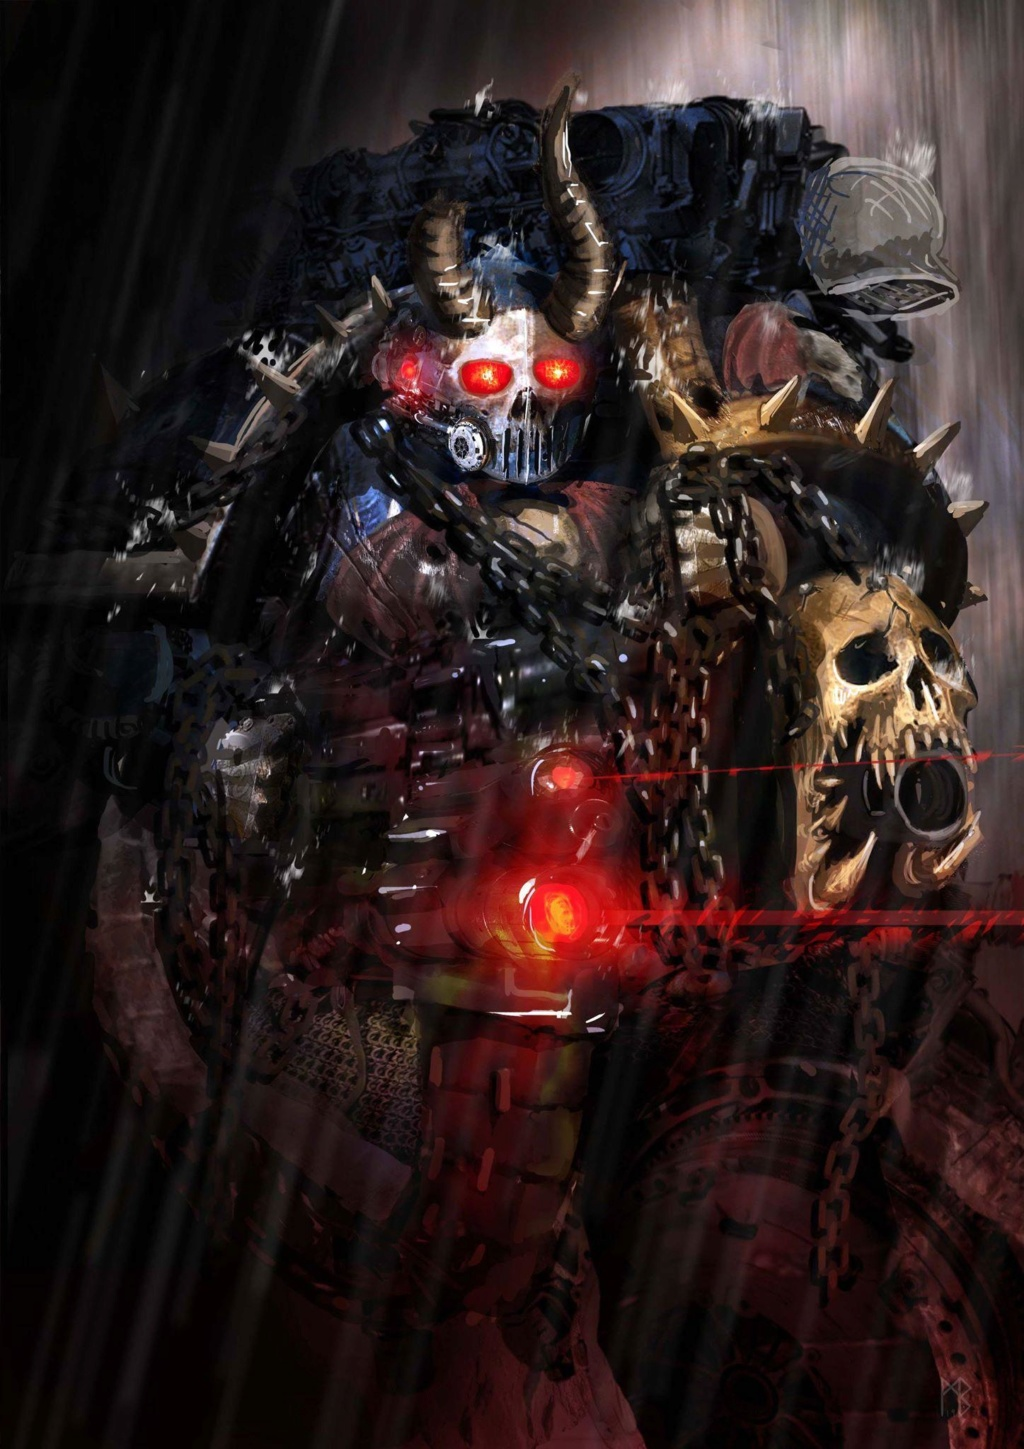 [W40K] Collection d'images : Space Marines du Chaos - Page 13 Mercut10